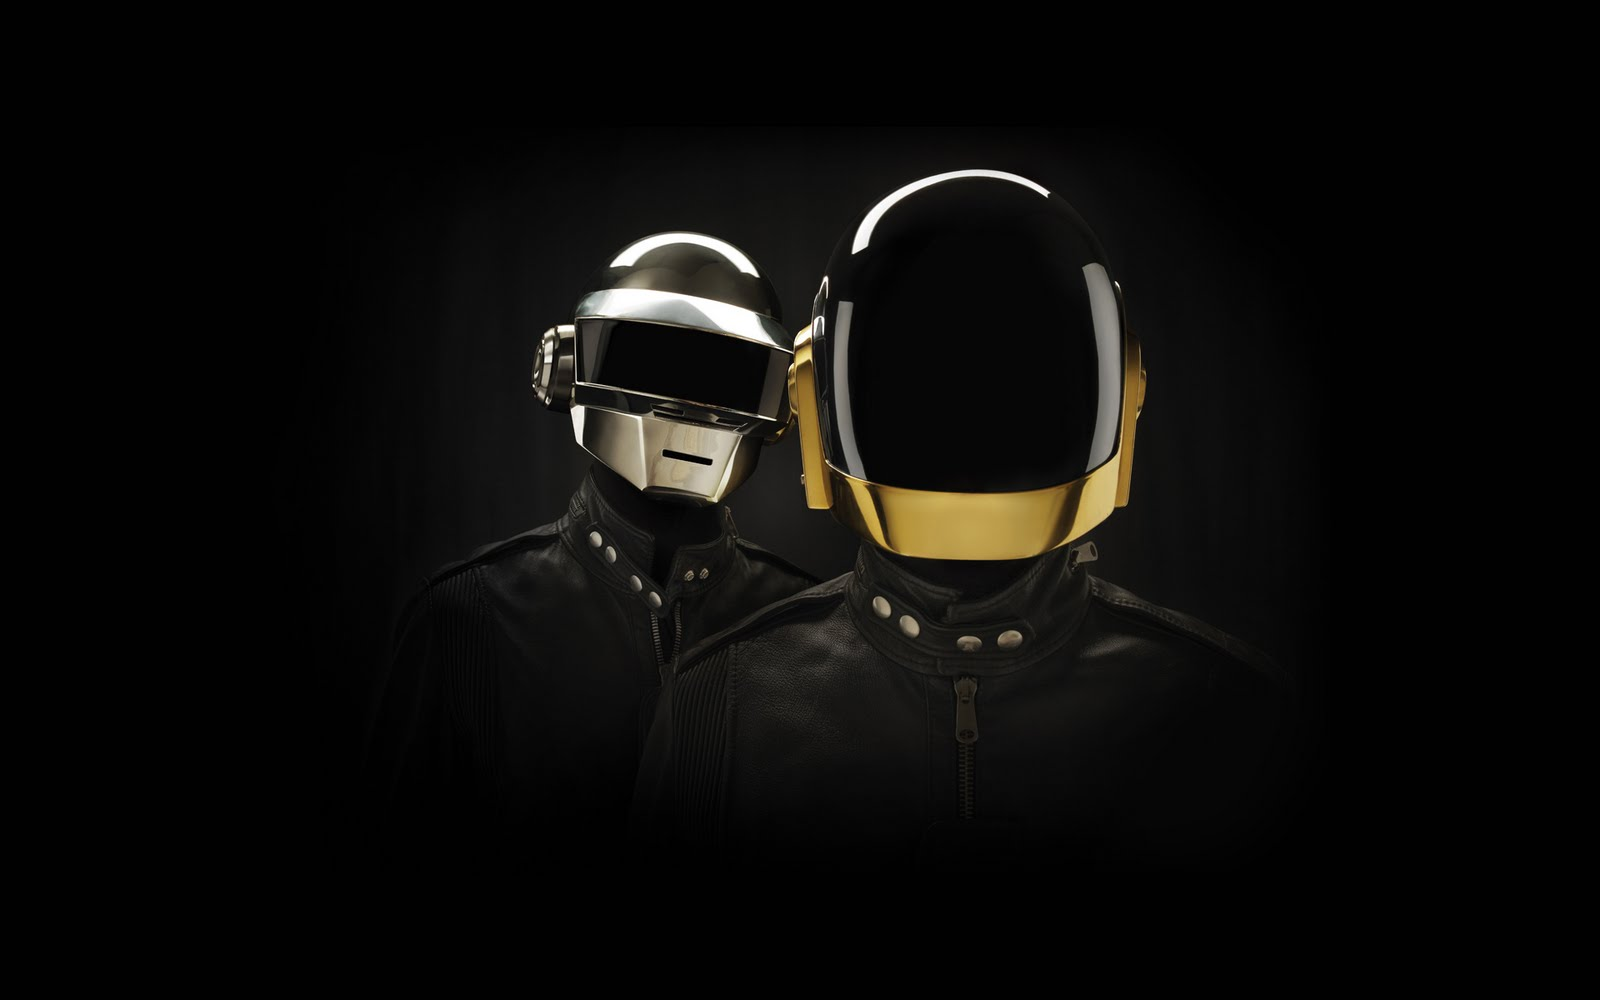 French Musicians Daft Punk Full HD Wallpaper Wallpaperrs - french musicians daft punk wallpapers